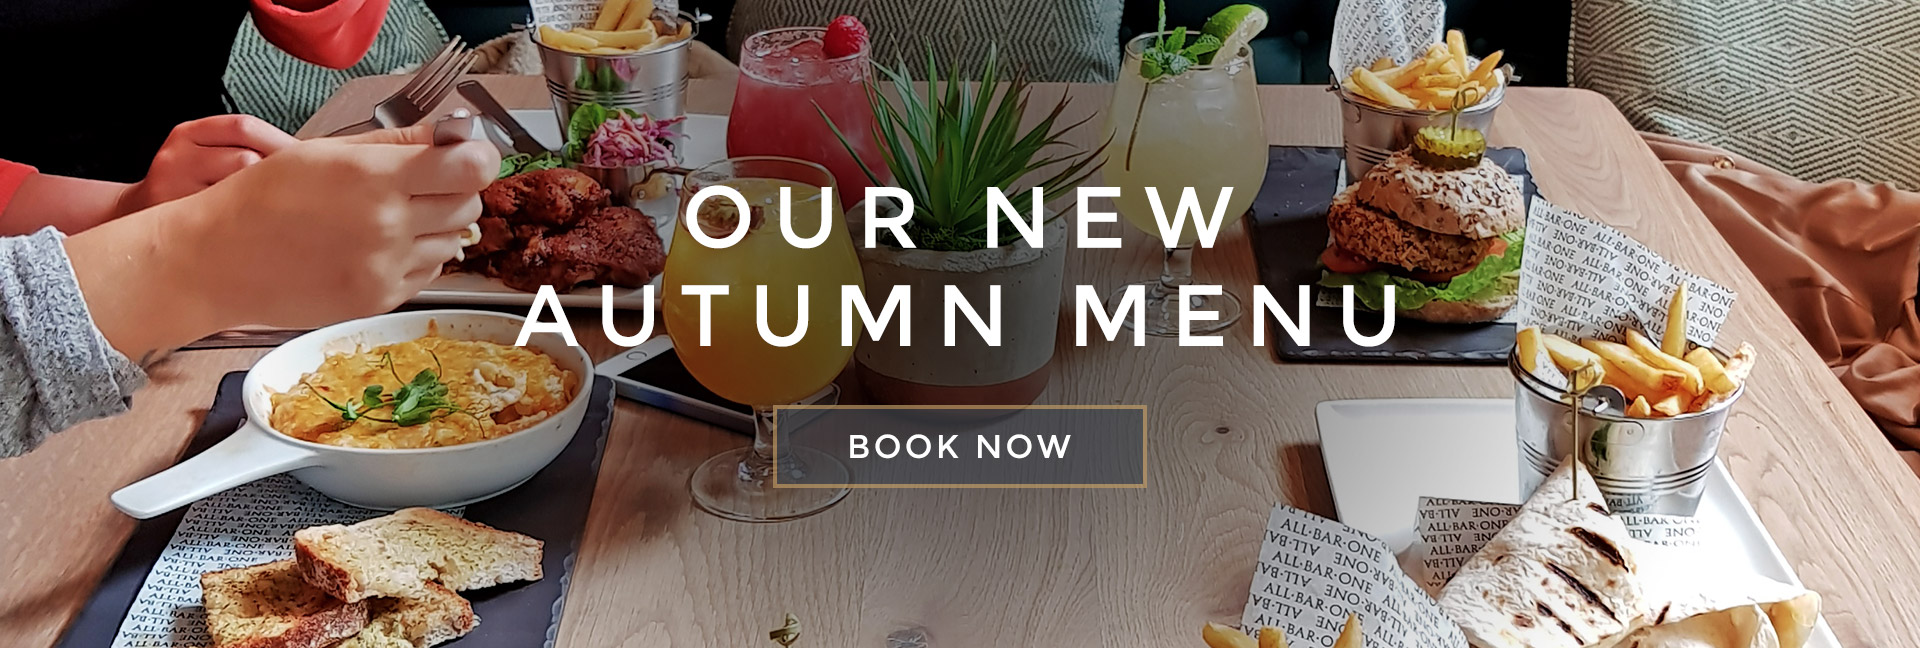 Our new Autumn menu at All Bar One Houndsditch - Book now